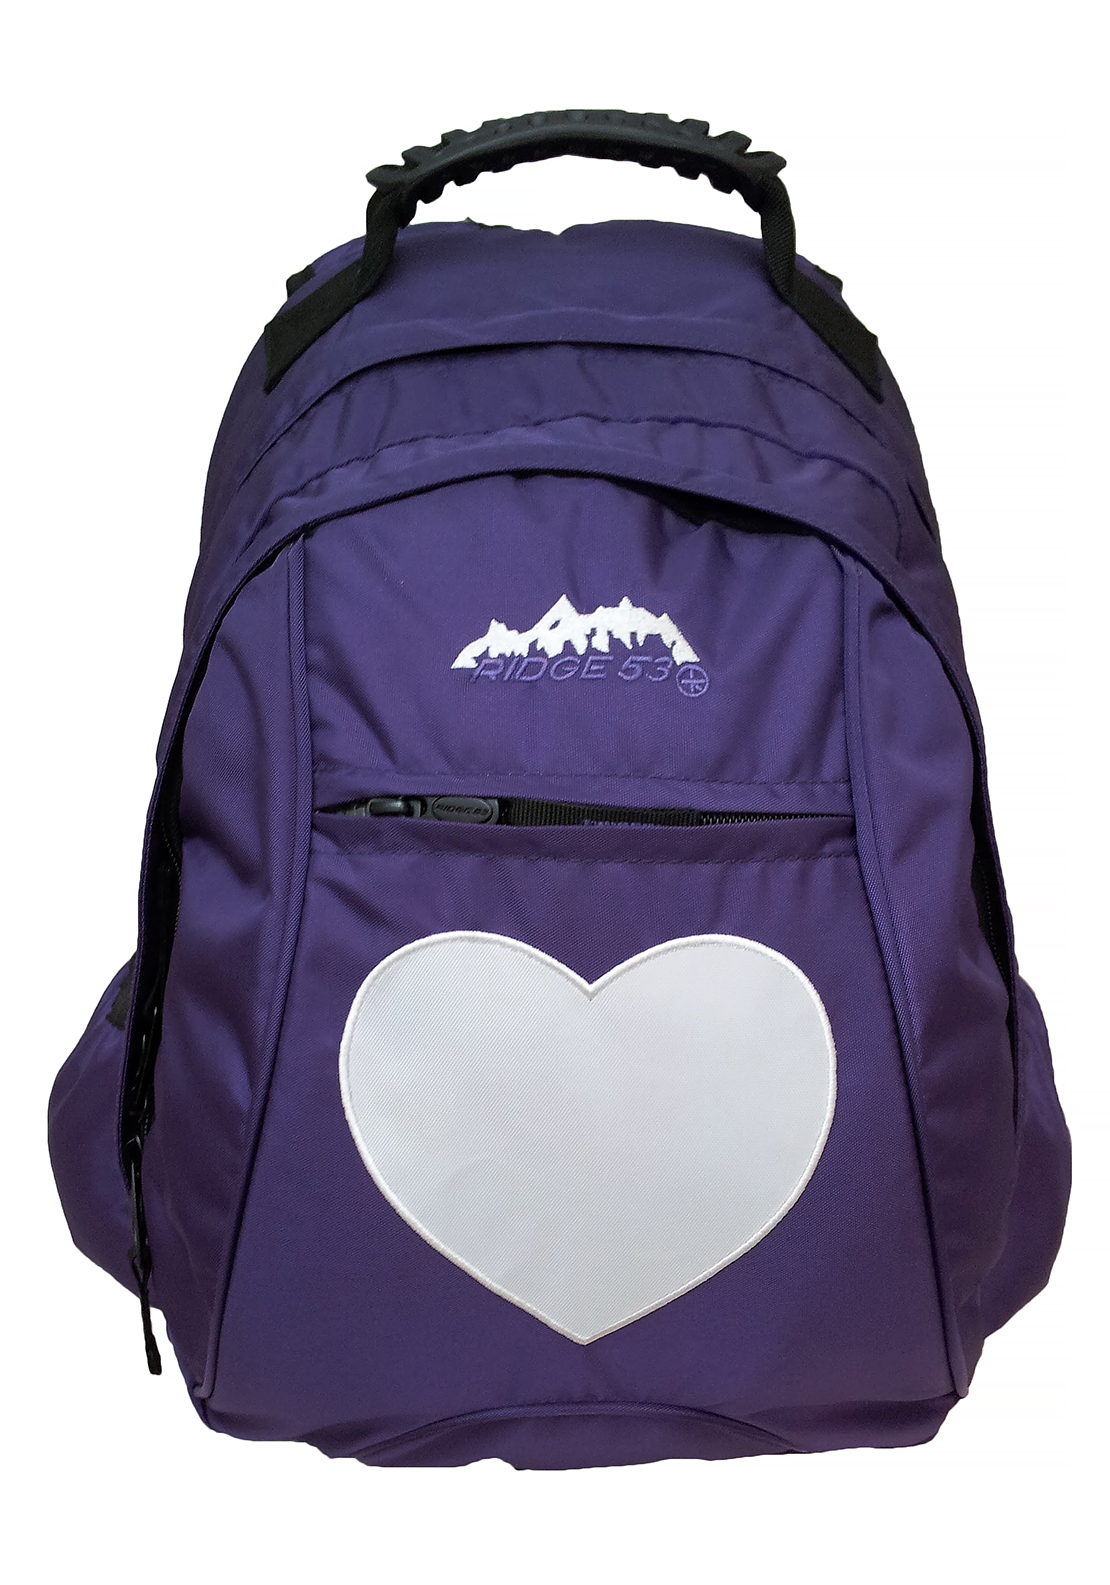 Ridge 53 Grace Backpack School Bag, Purple